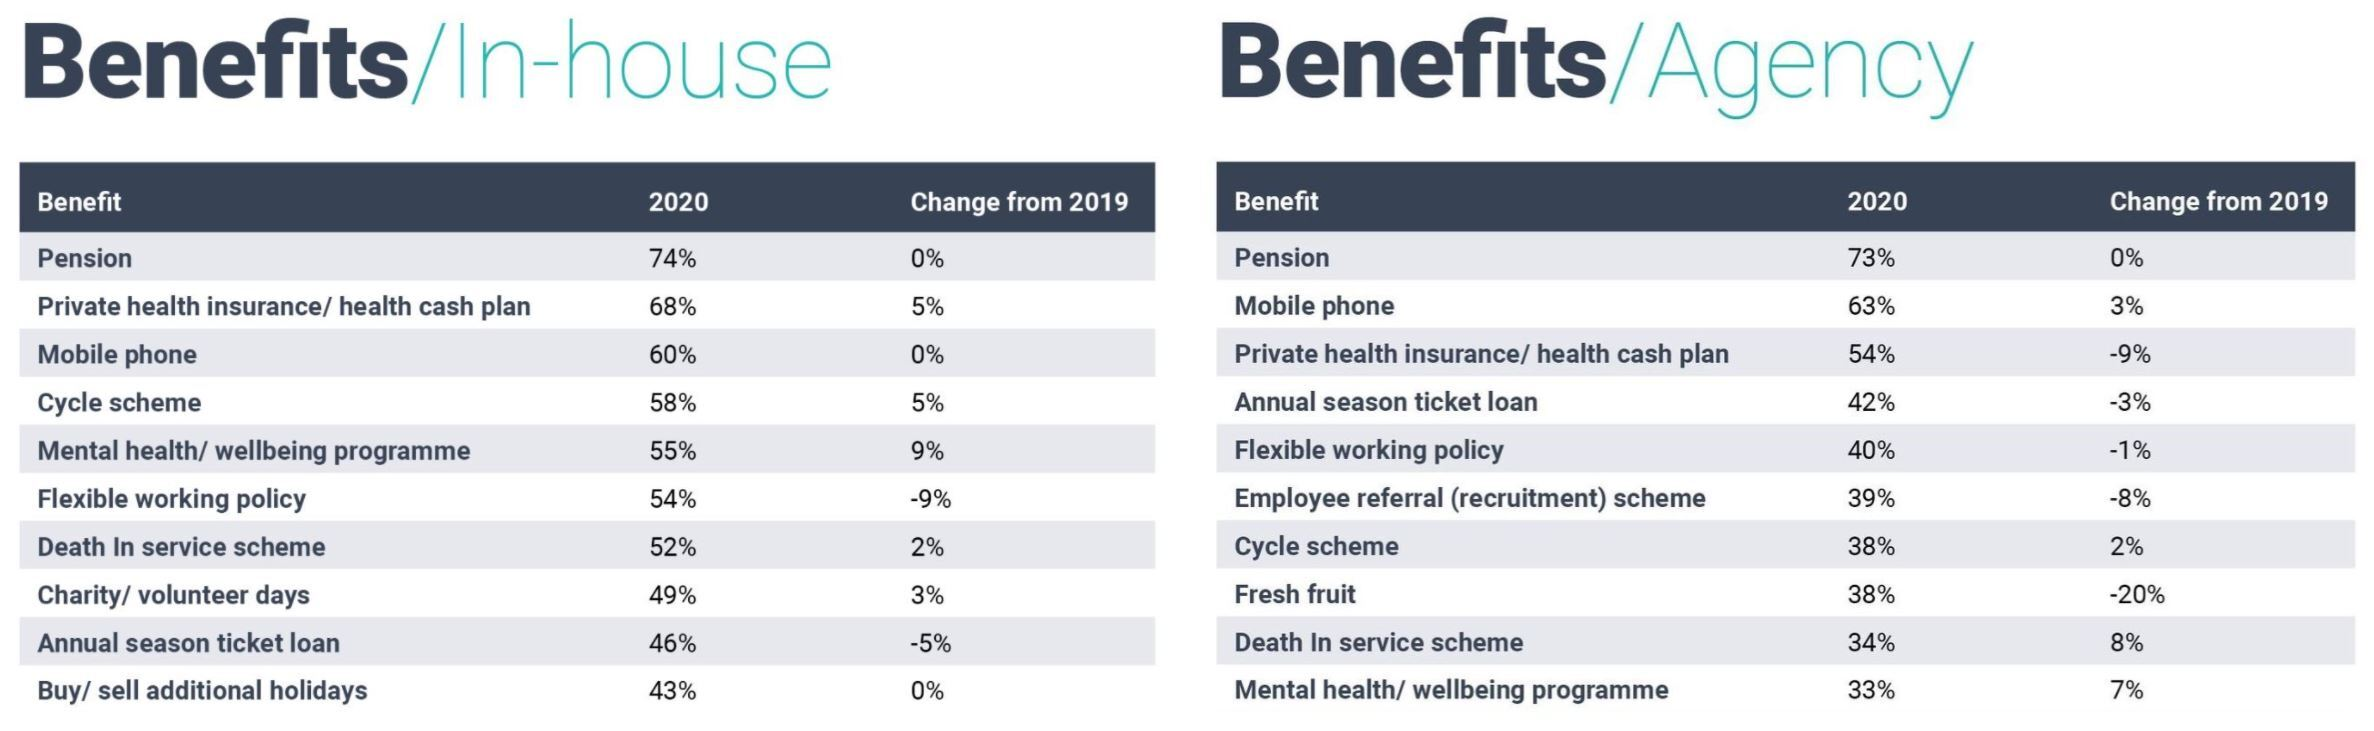 Top ten benefits in-house and agency 2019-2020